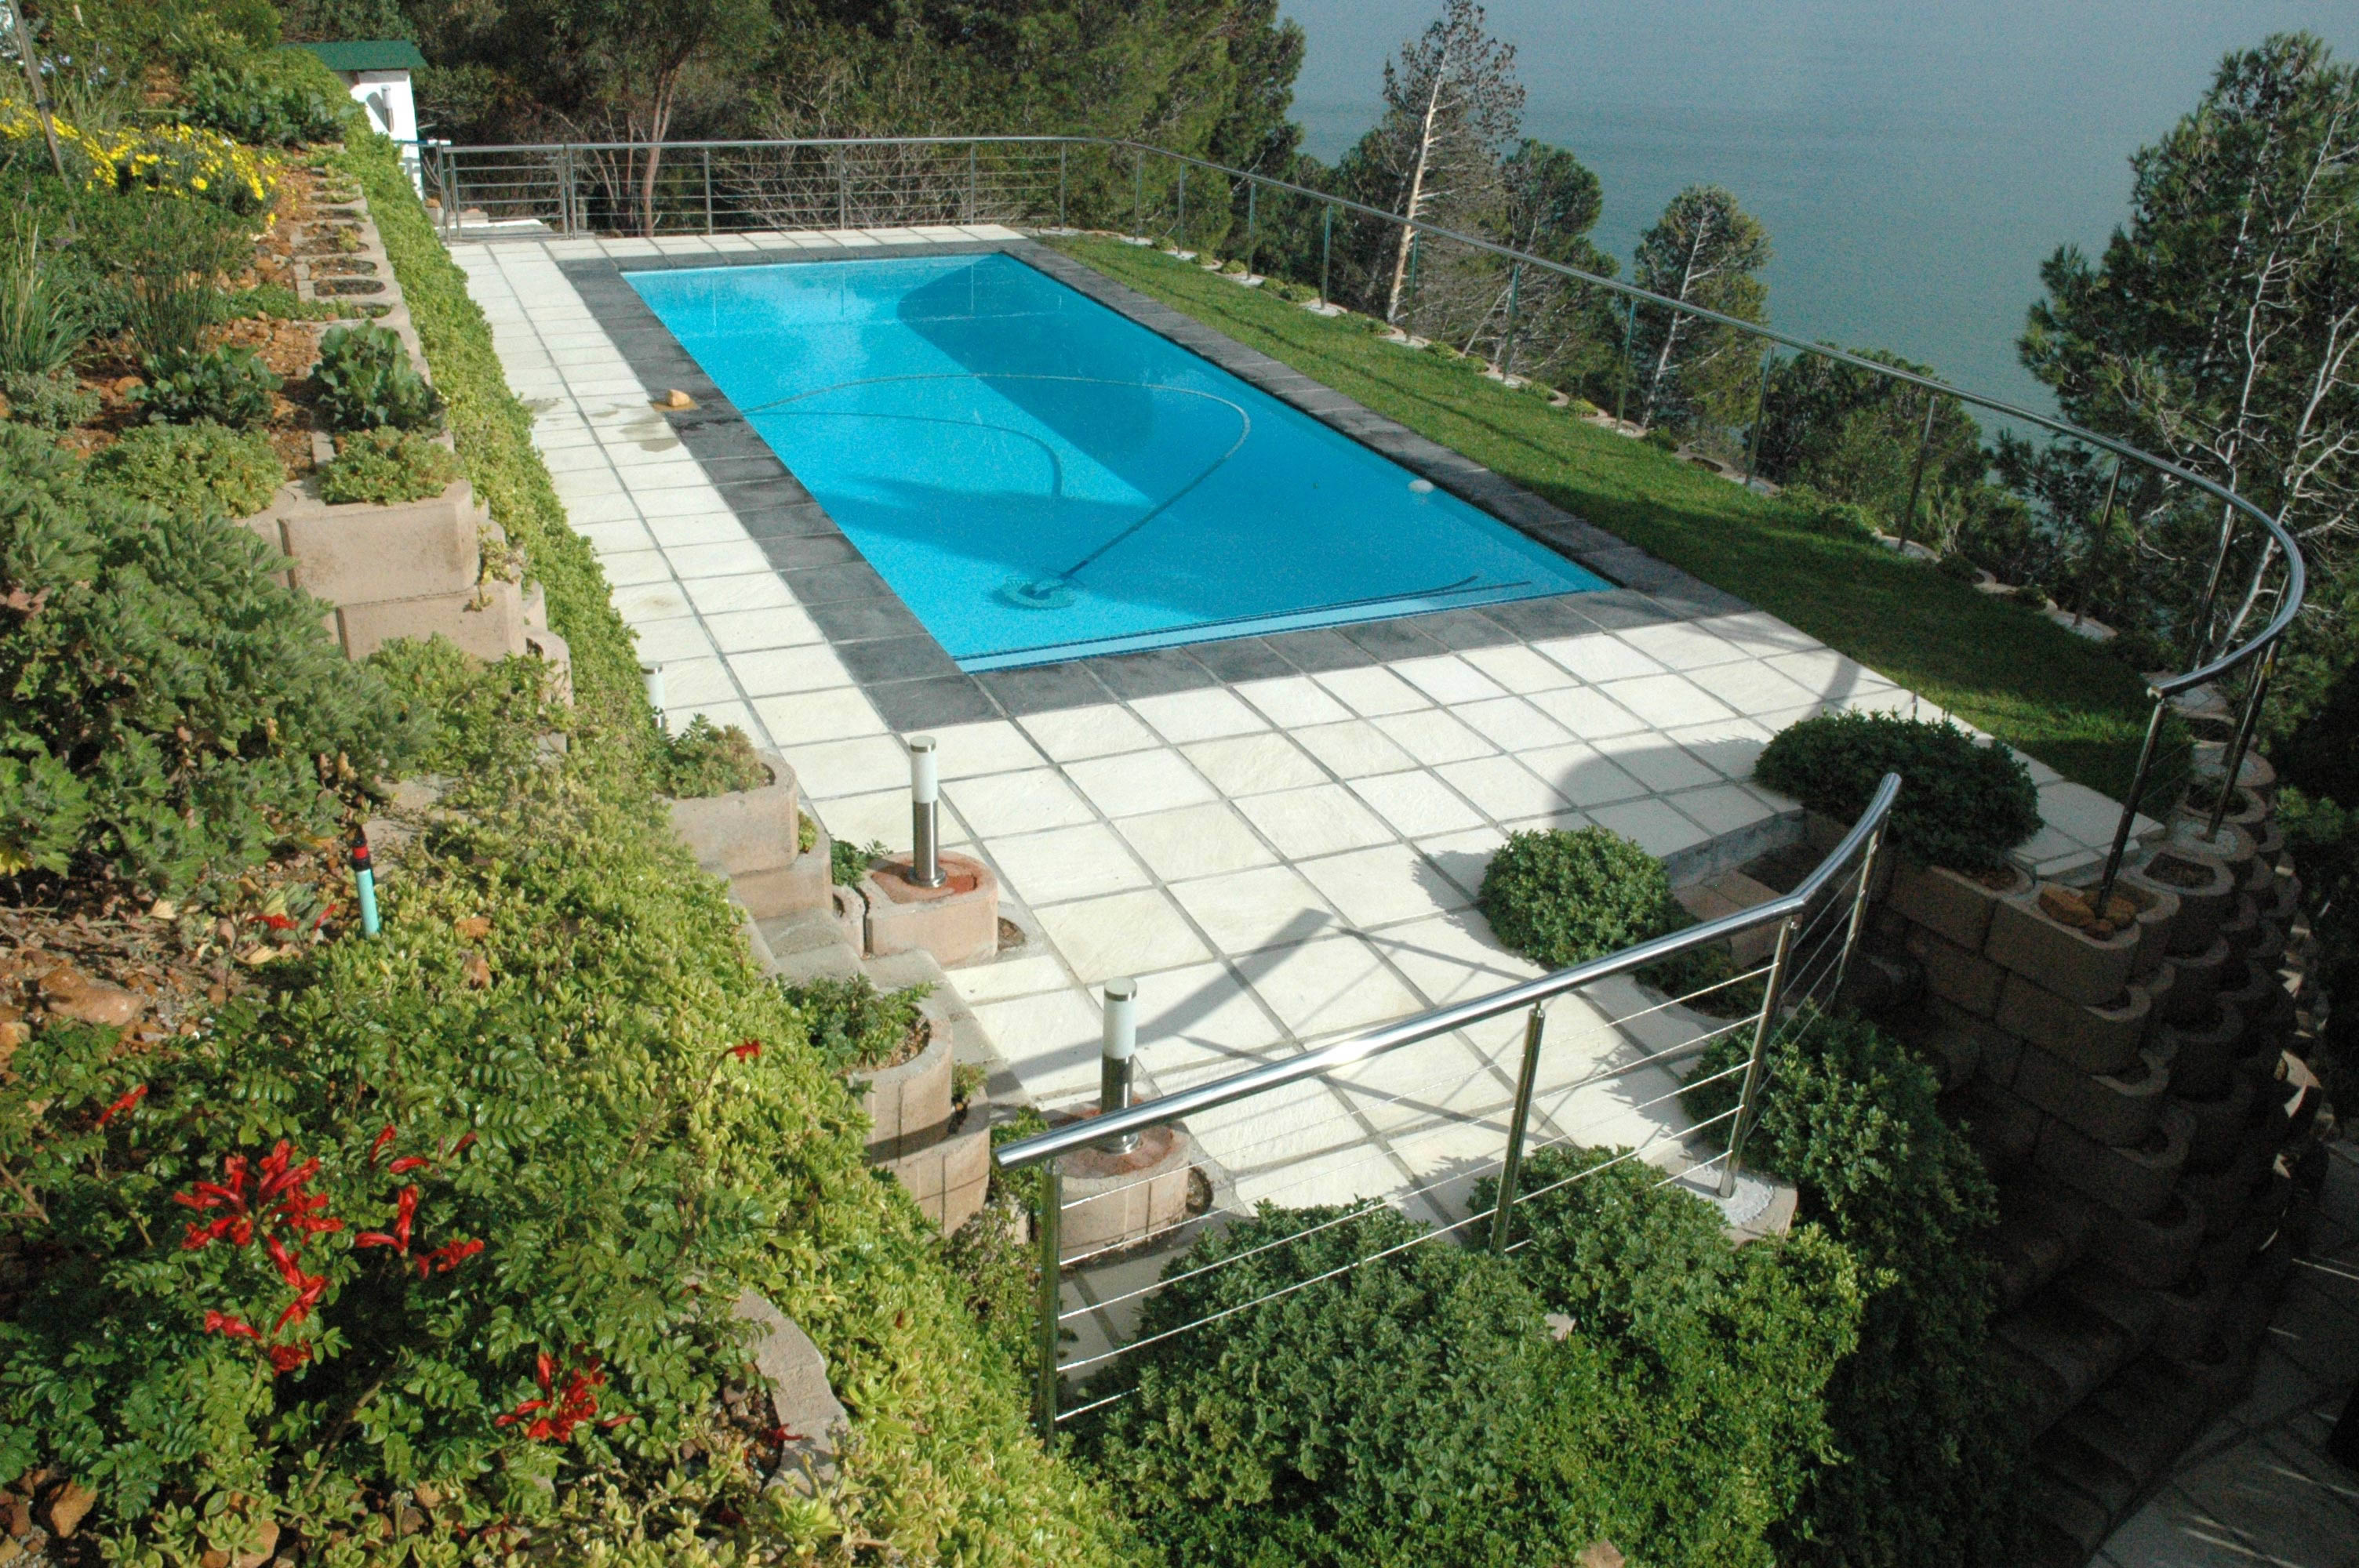 The Lower Terrace supports a Pool